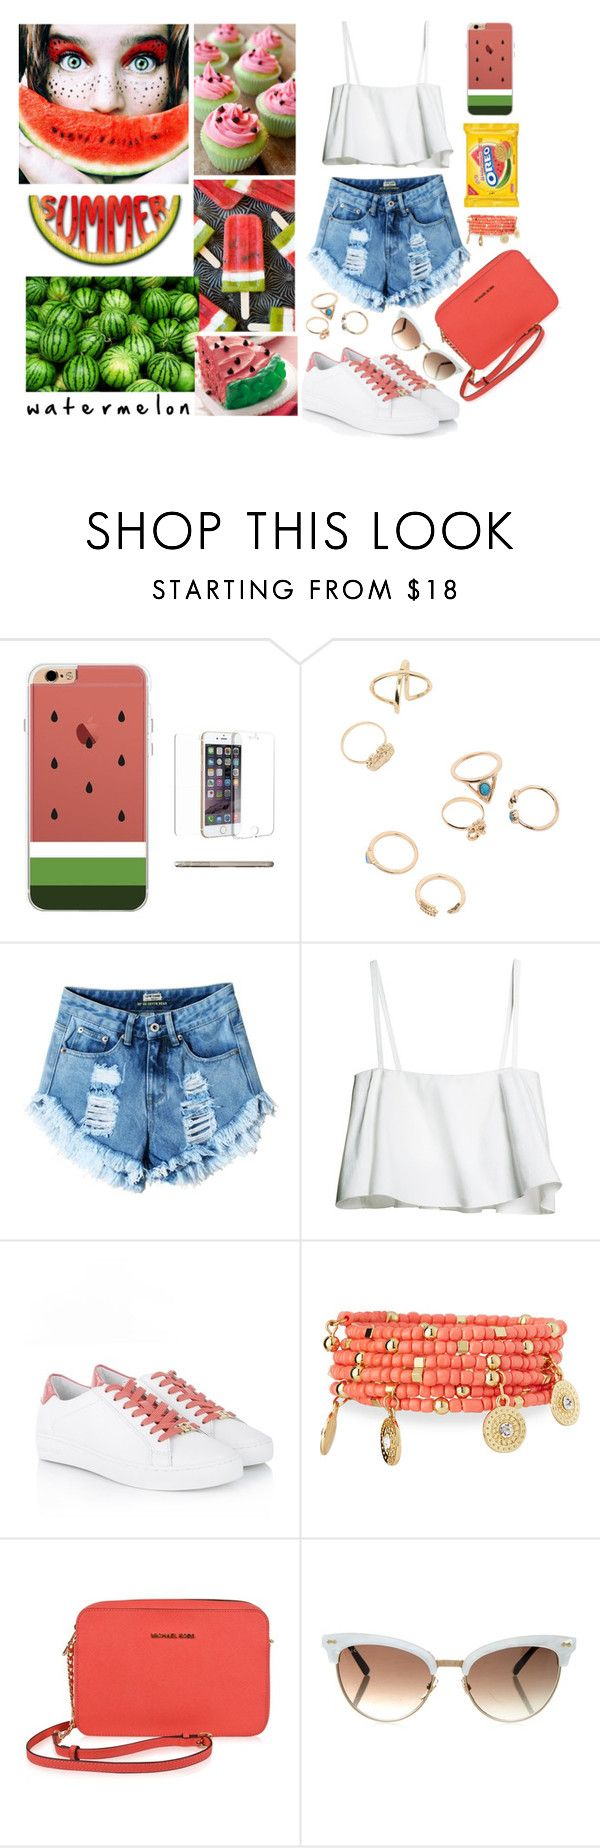 """Watermelon"" by elviretta on Polyvore featuring moda, Michael Kors, Emily & Ashley, MICHAEL Michael Kors e Gucci"